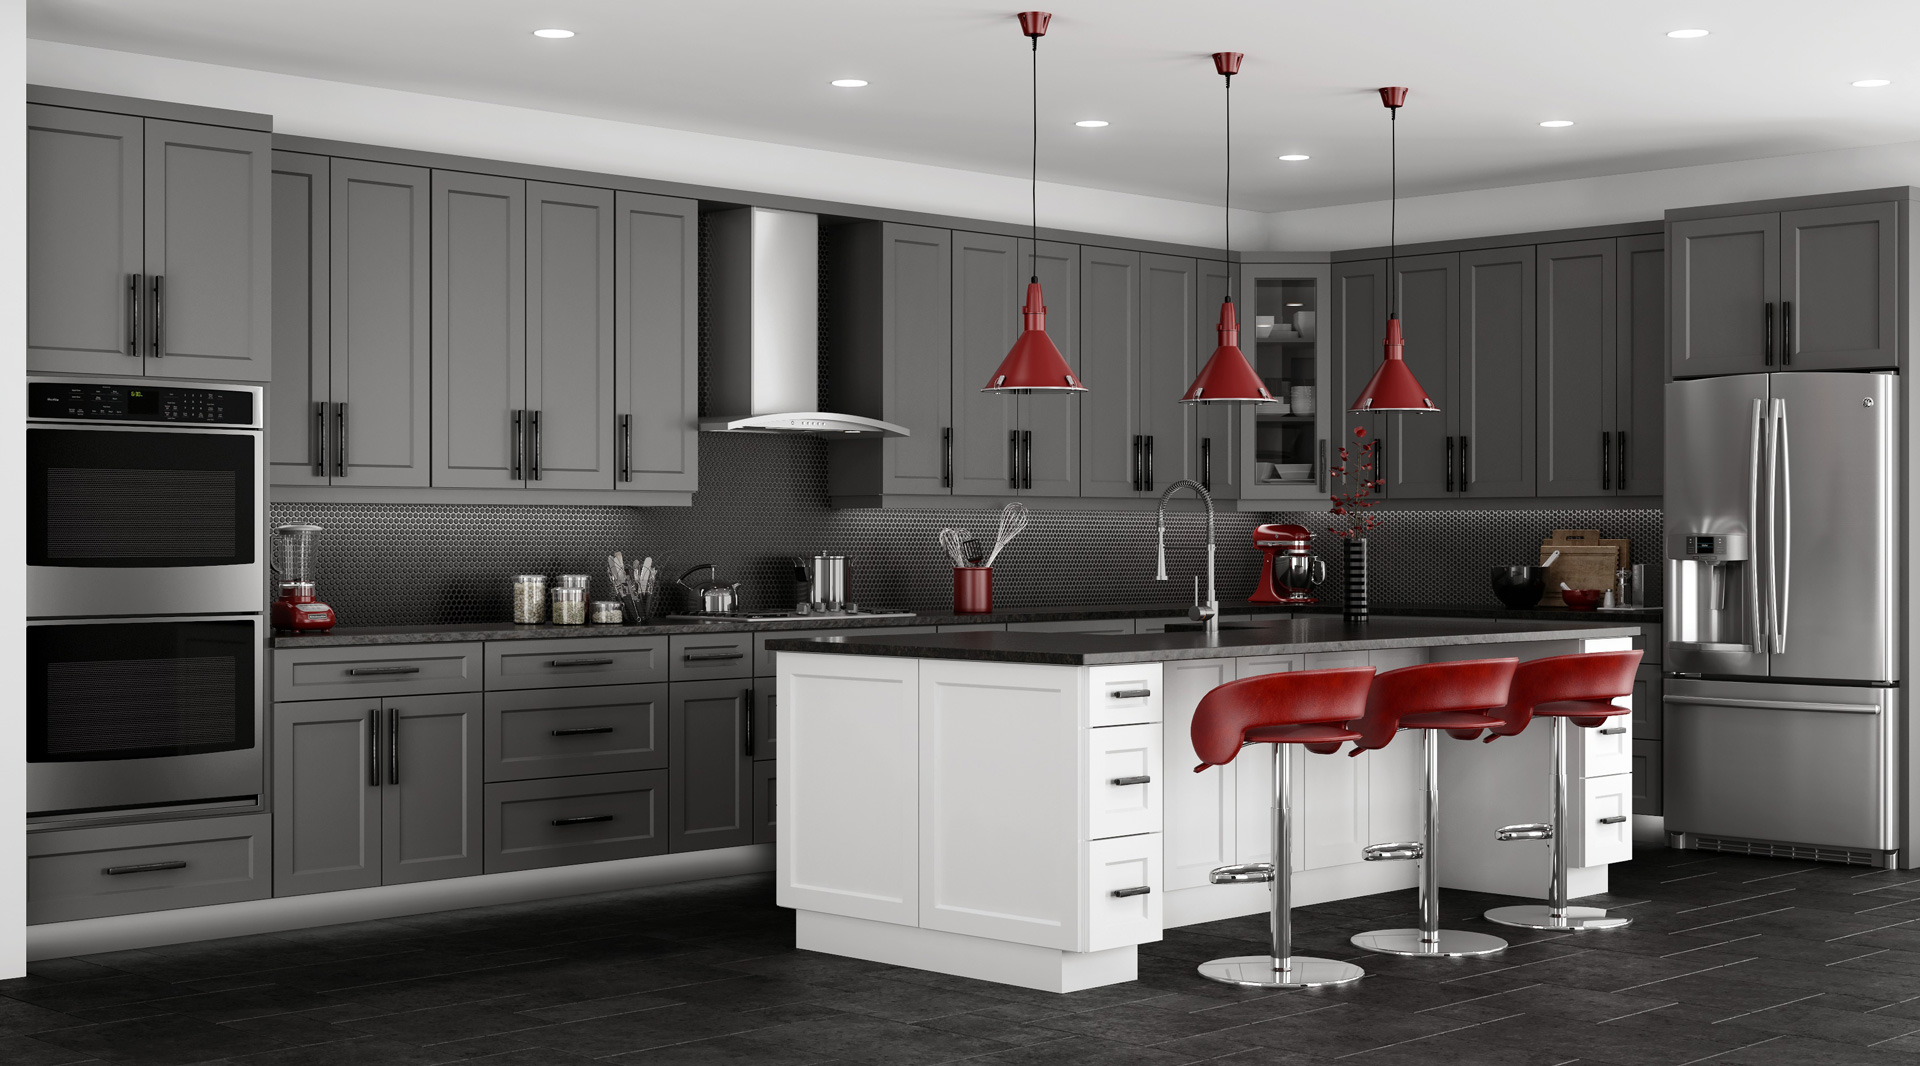 kitchen cabinet color replacement shelves for cabinets trend this summer 2018 value llc two surprising trends